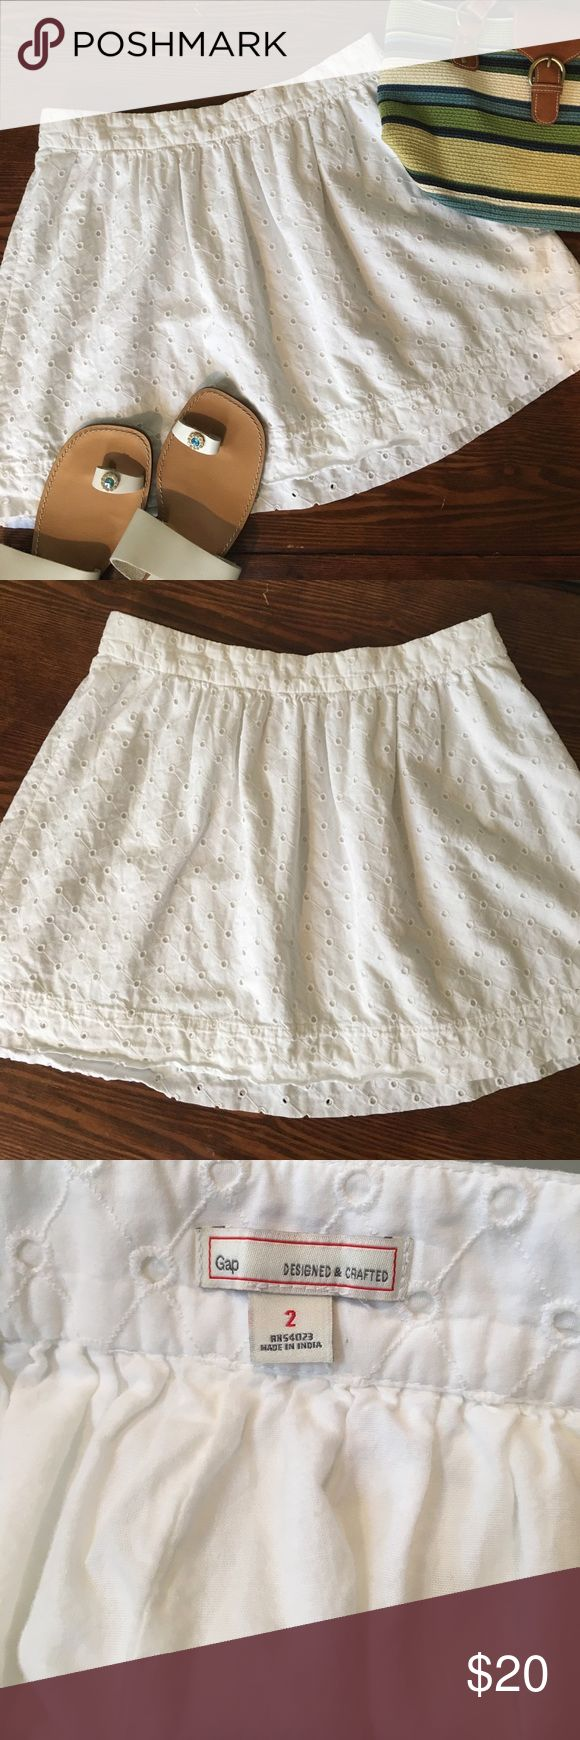 "🌸🐰 SALE! Gap white eyelet skirt 🌸 Gap white eyelet skirt, fully lined. Approximately 16"". Side zipper. So pretty and fresh for Spring and Summer! GAP Skirts"